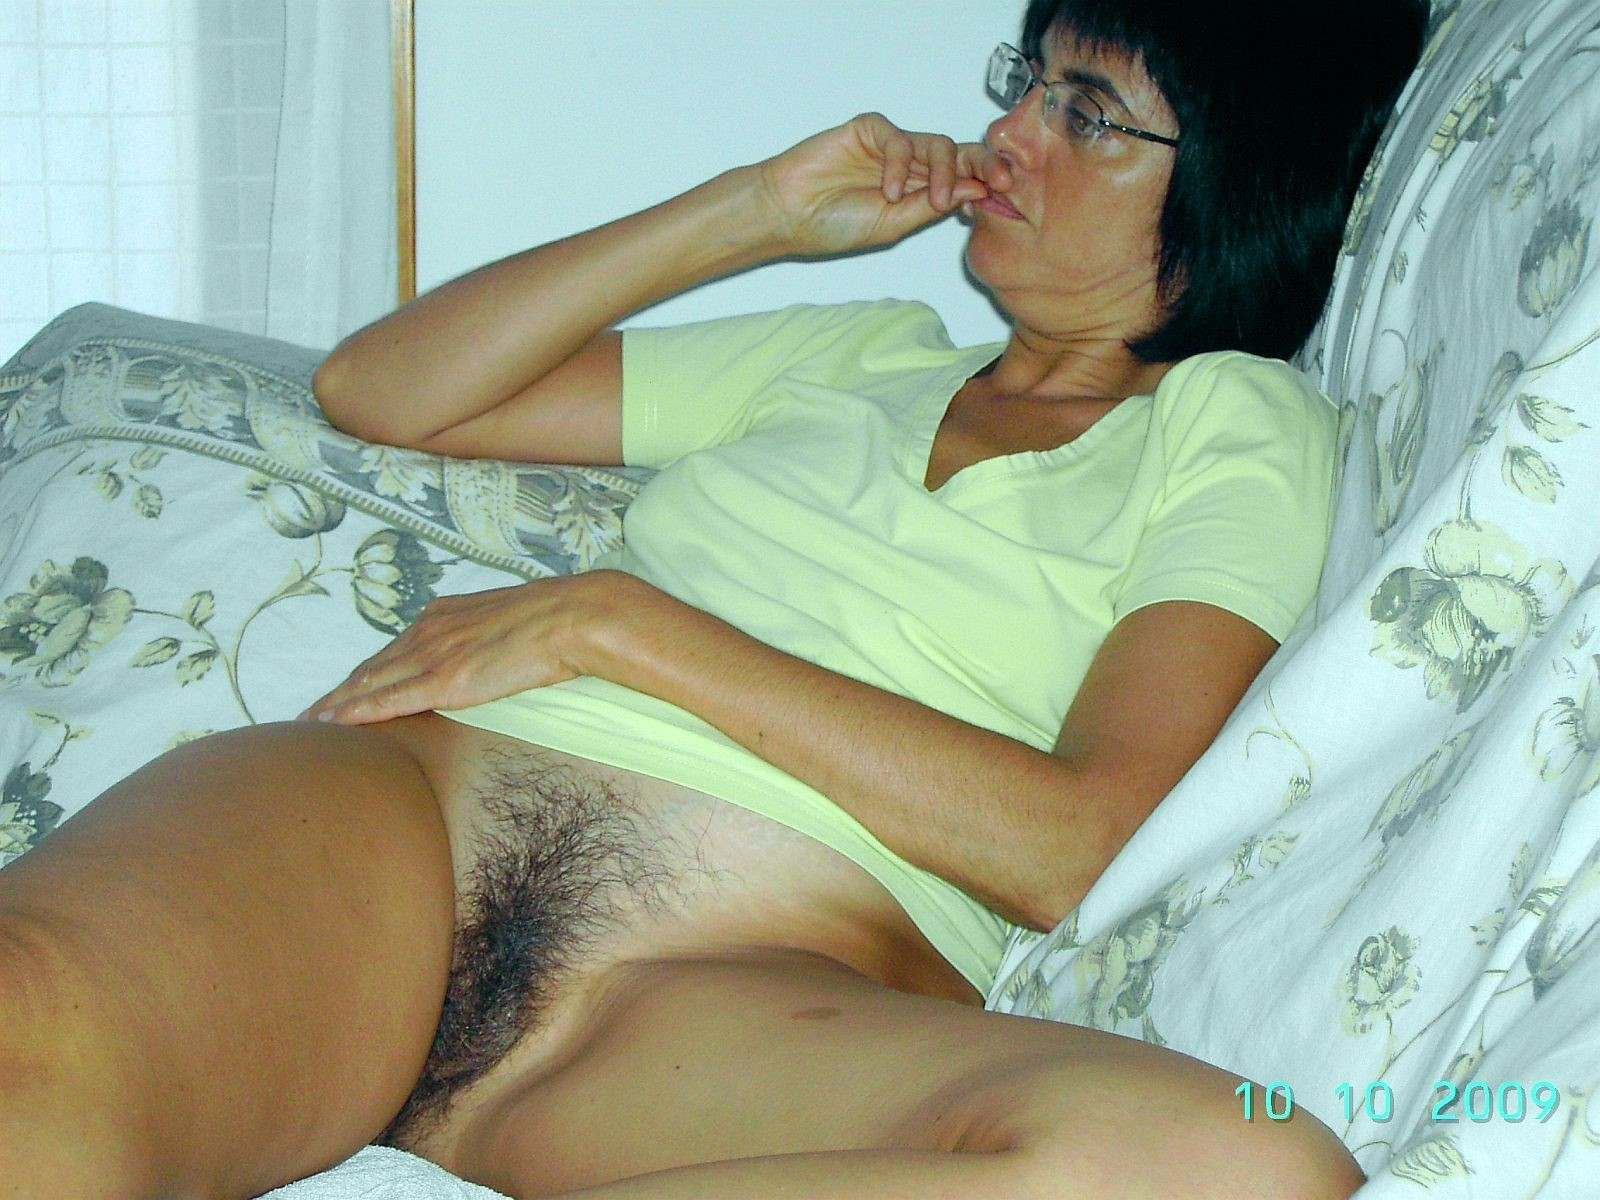 you real amateur skinny girl nude congratulate, this magnificent idea